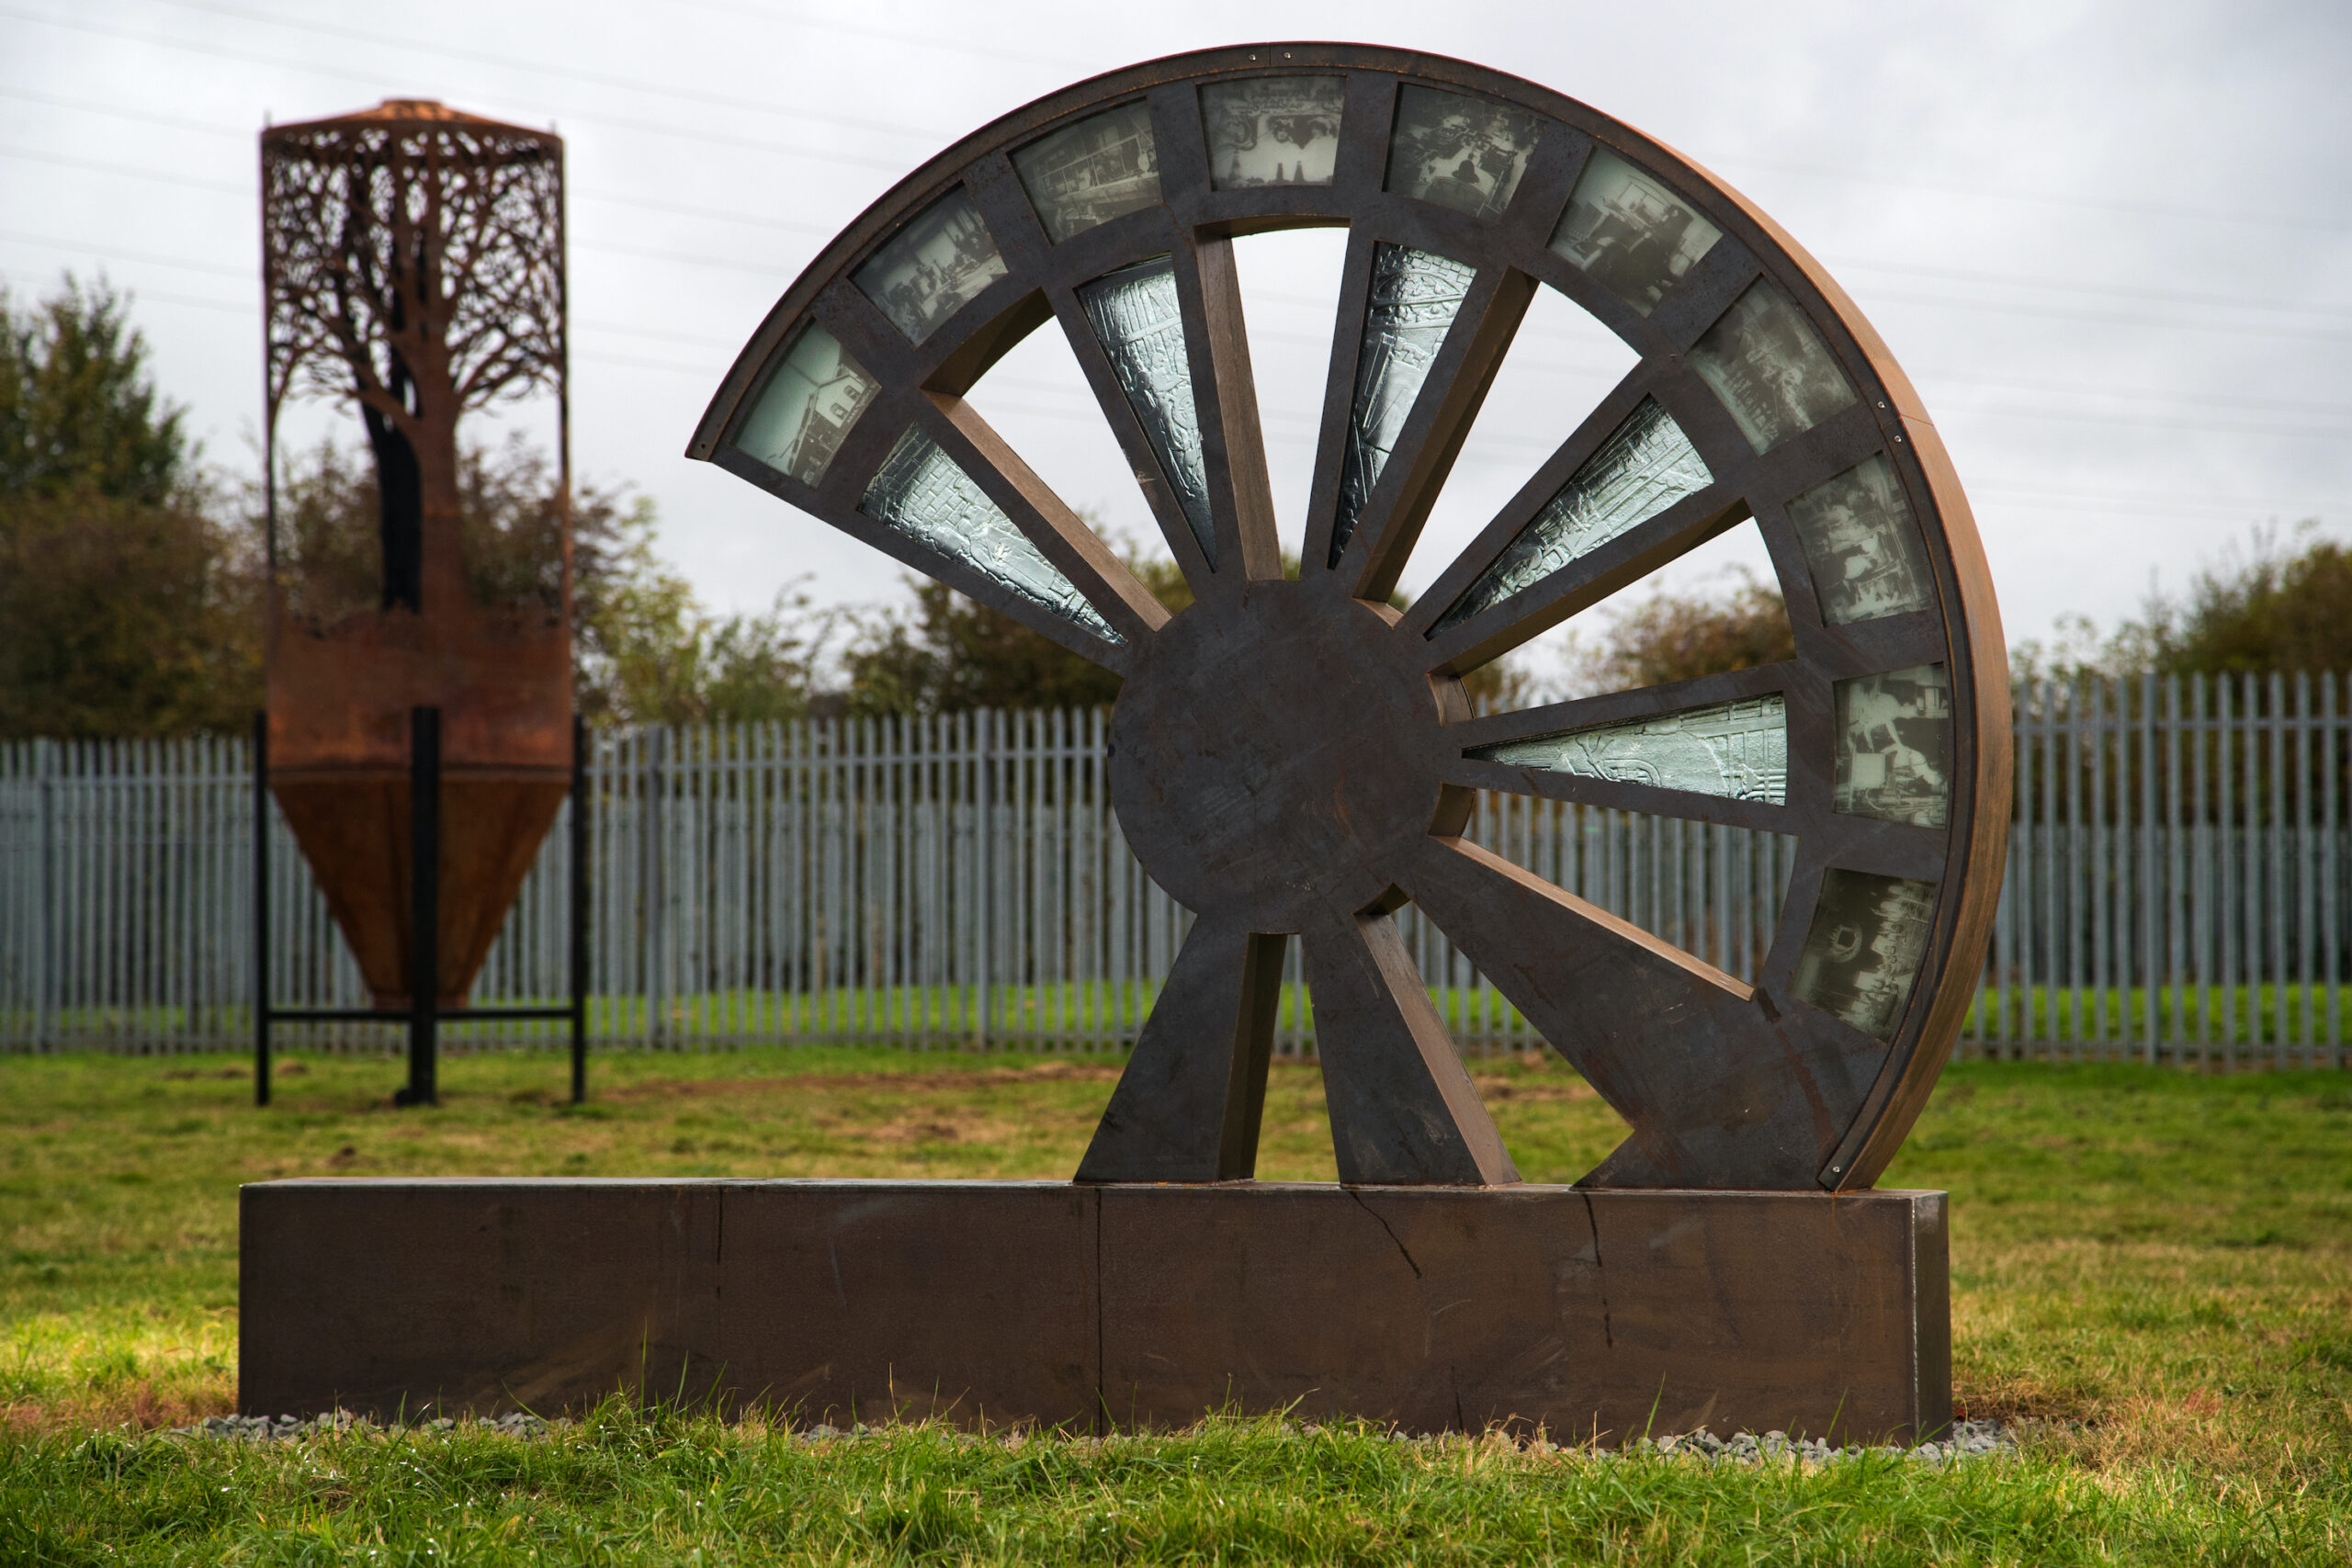 A sculpture made of steel and glass in the shape of a wheel